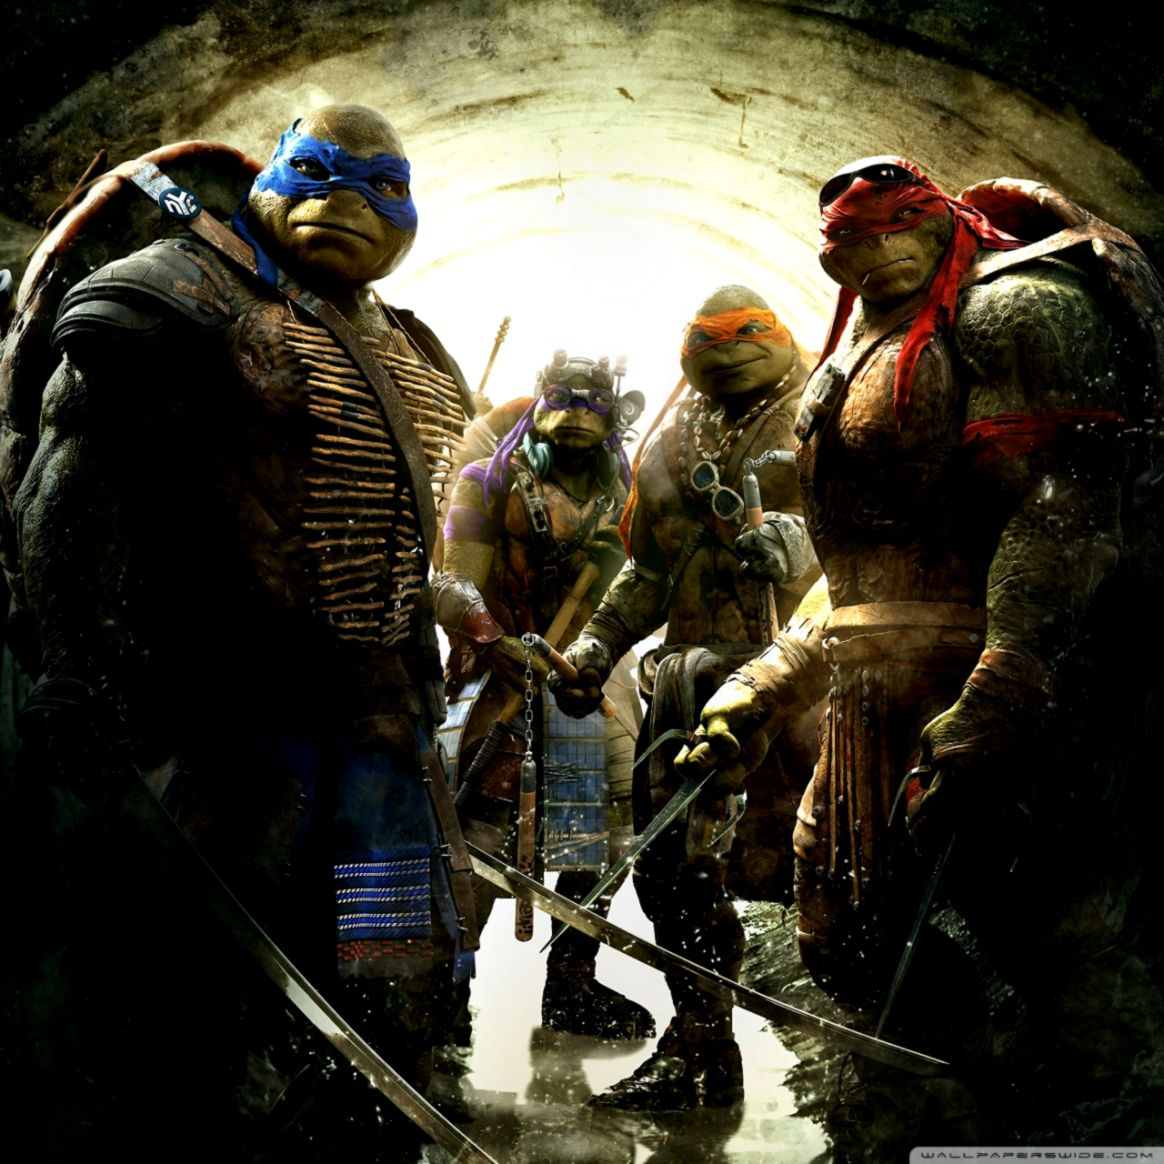 Teenage Mutant Ninja Turtles 2014 Wallpapers All In One